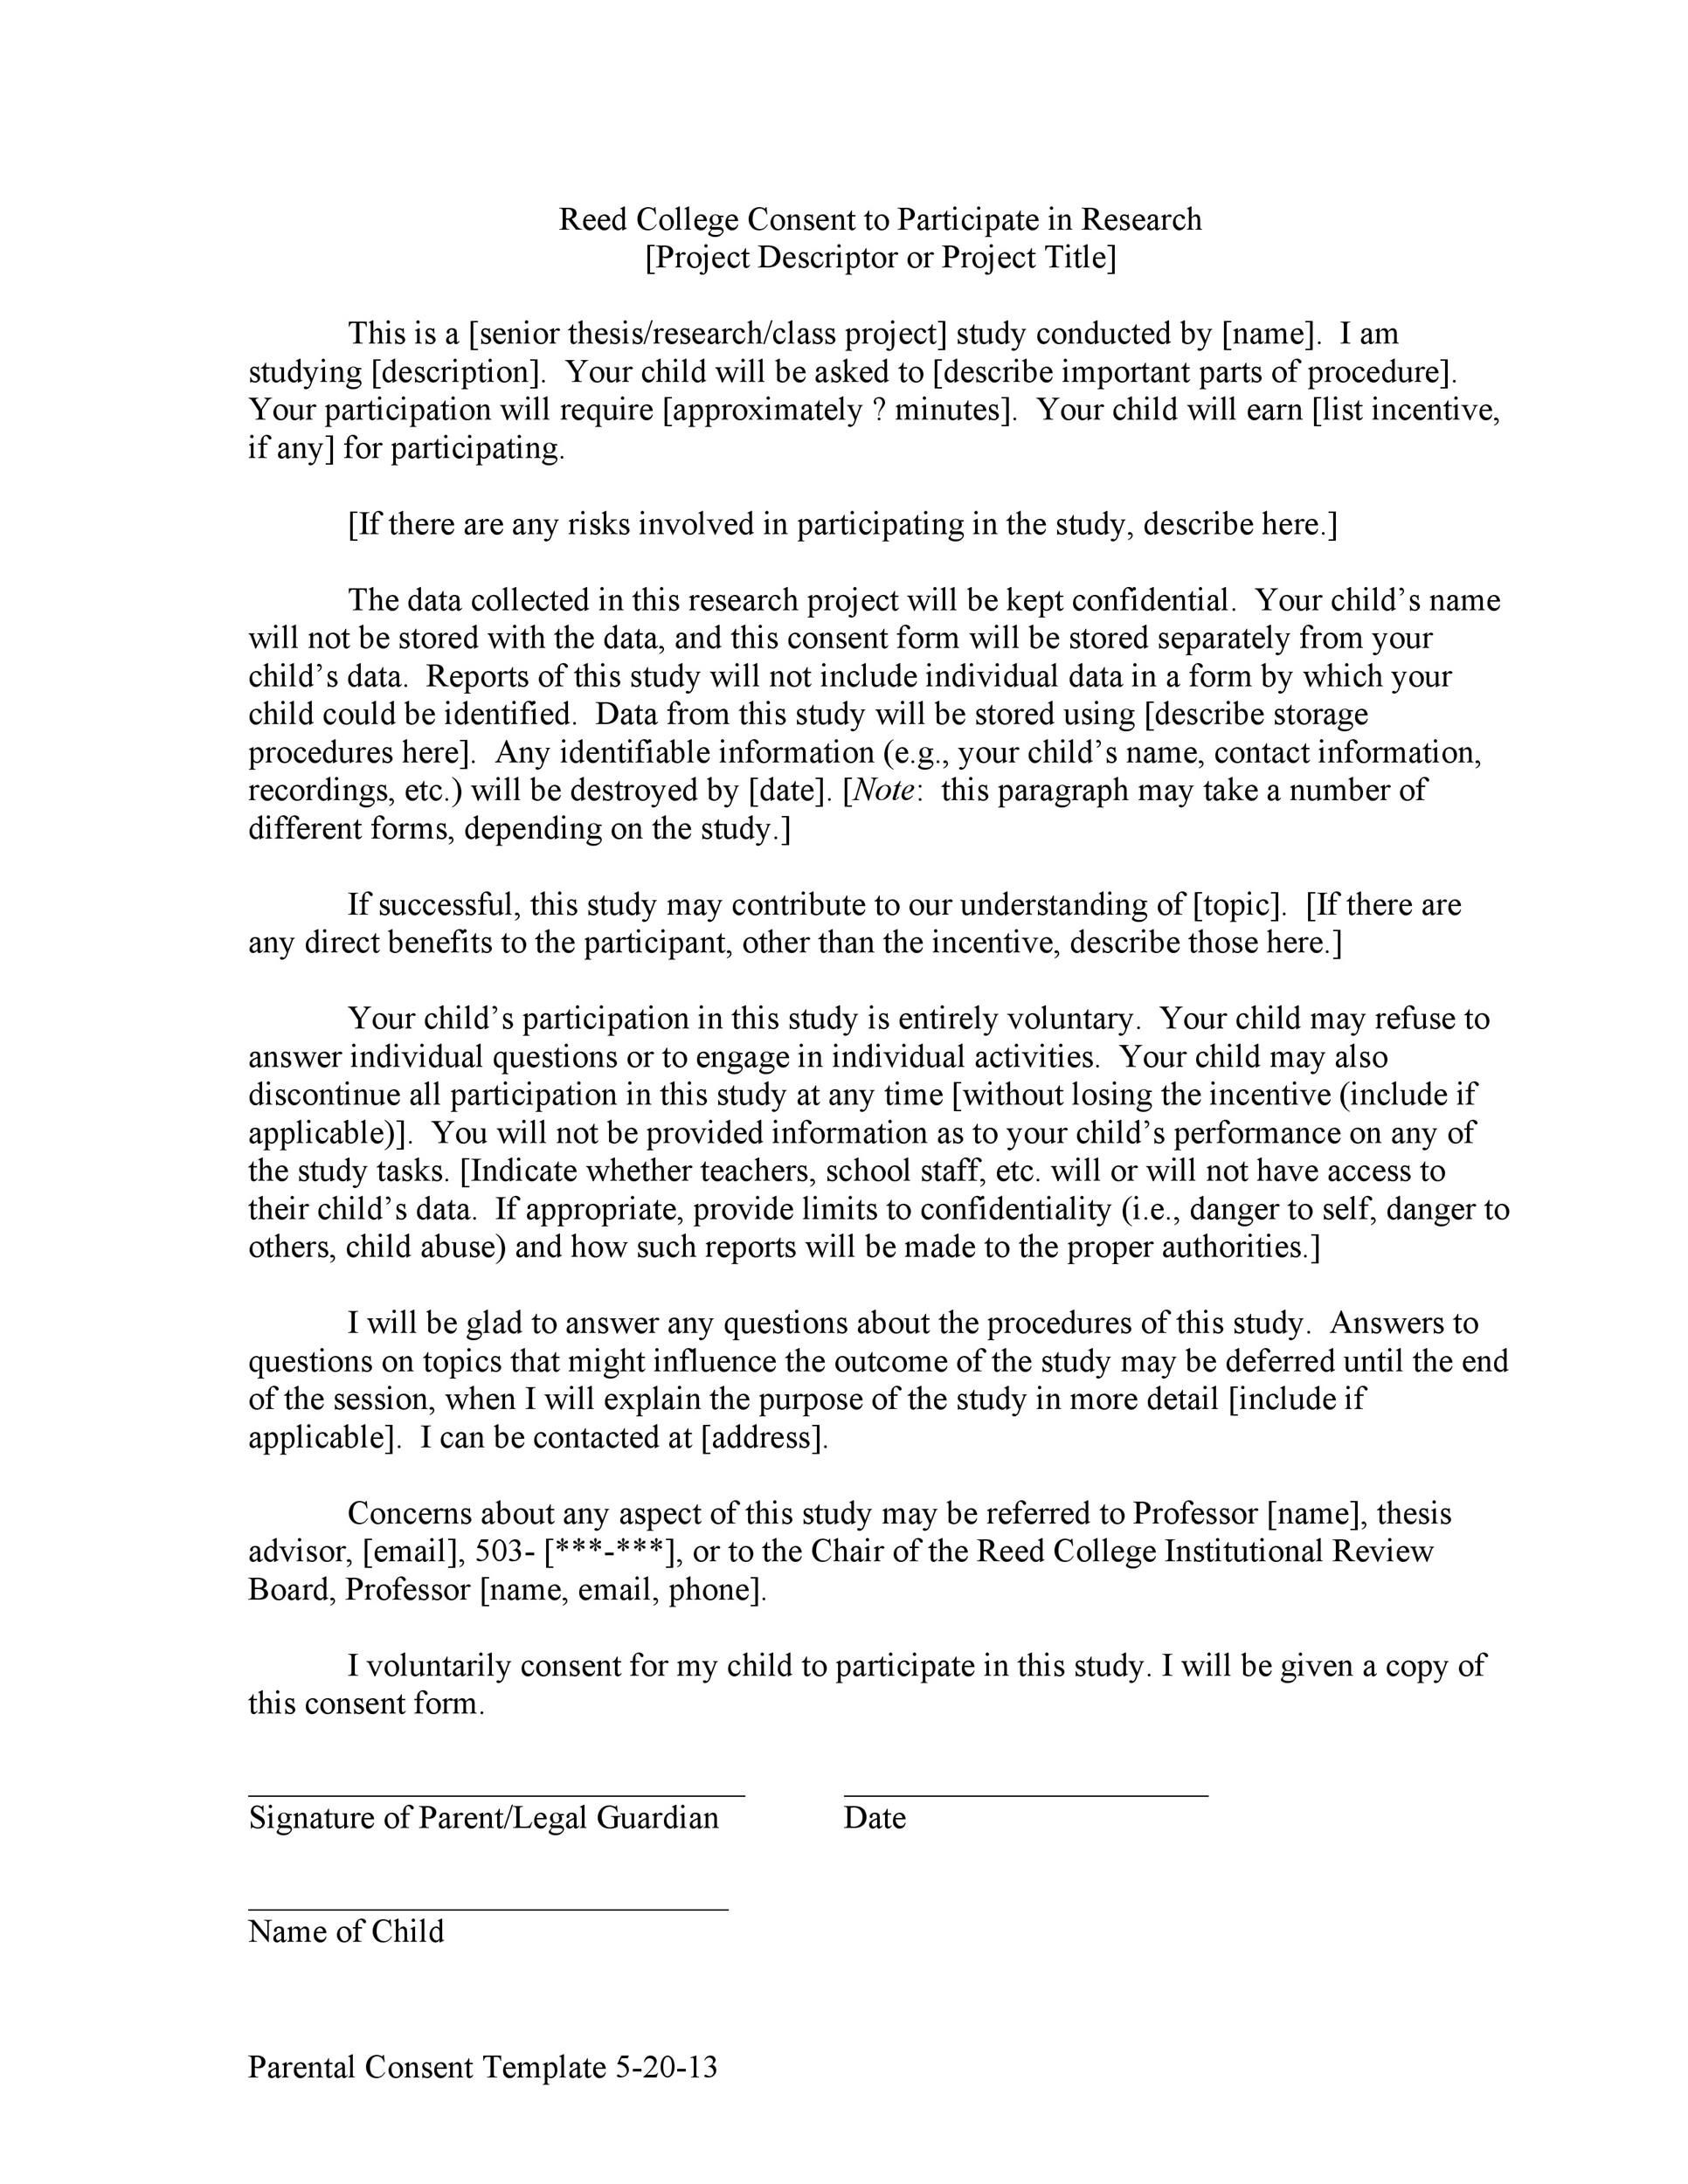 Free parental consent form template 08